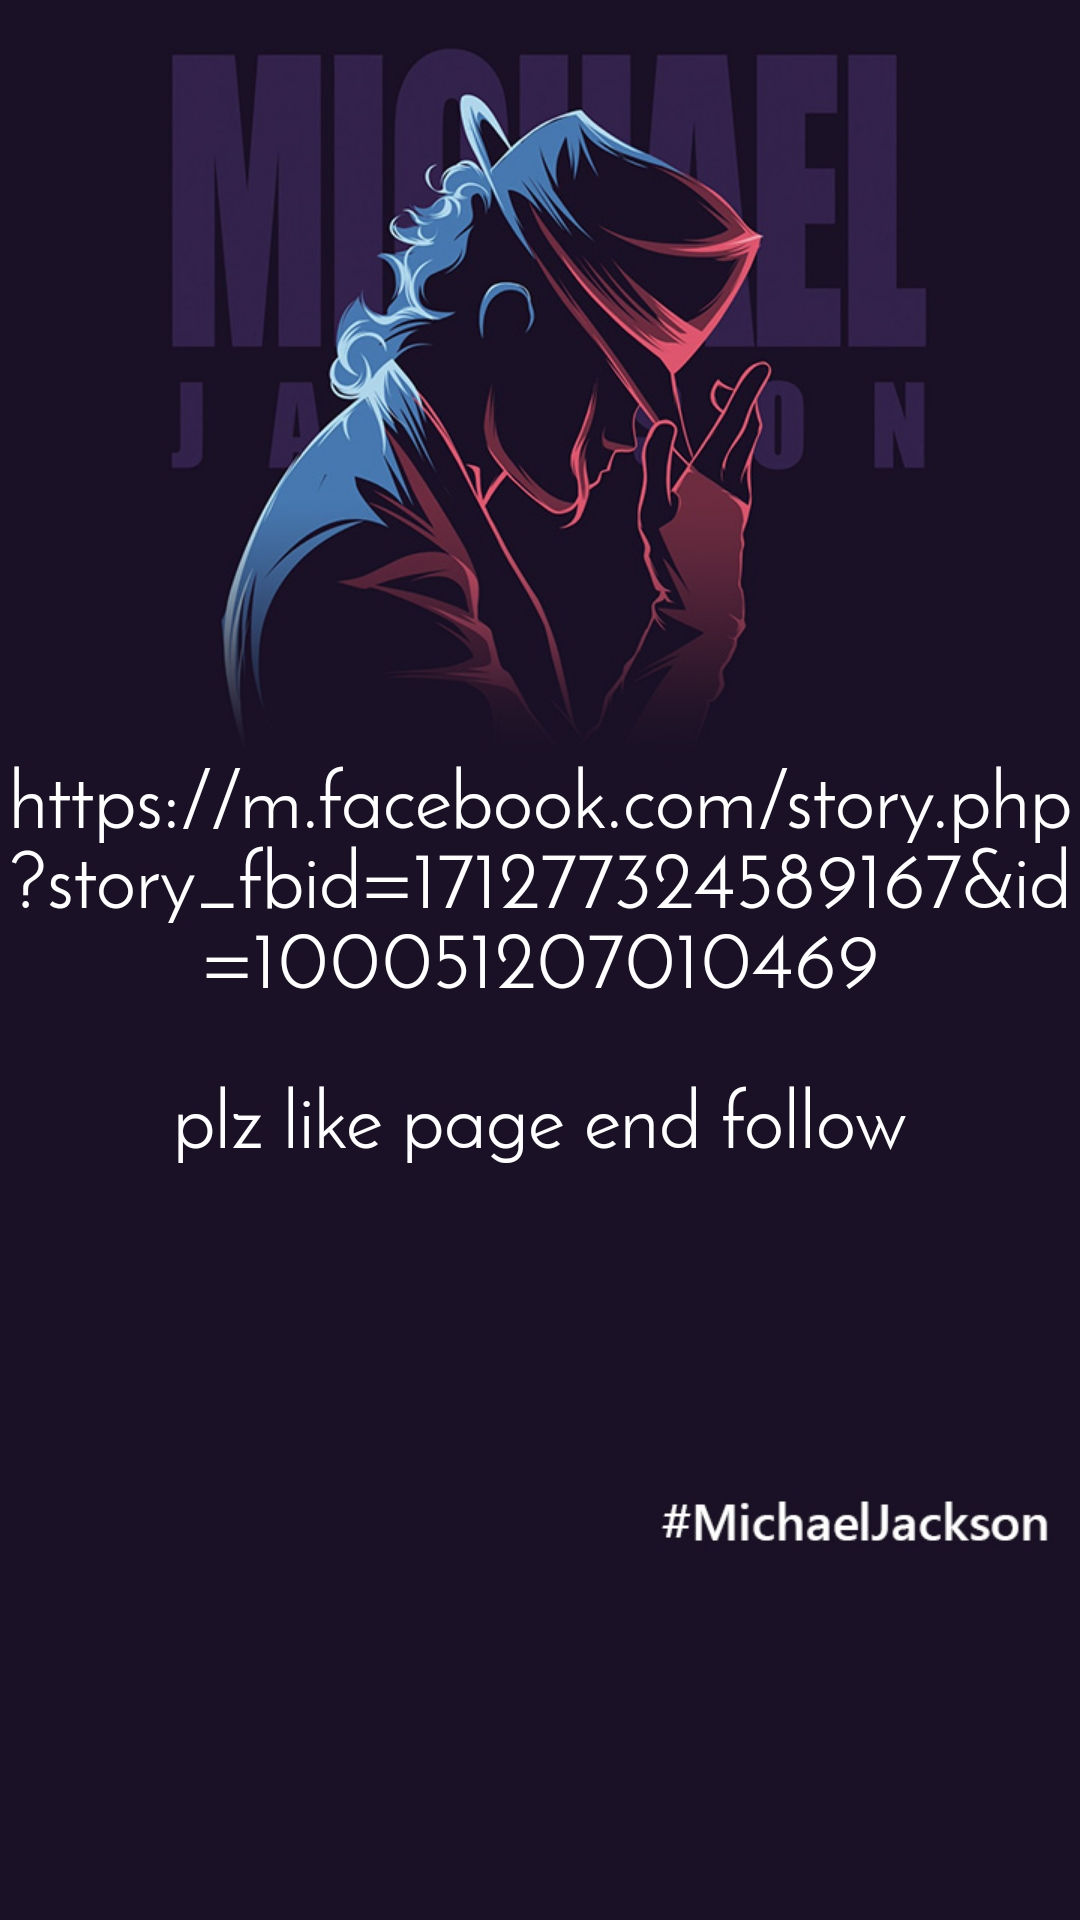 https://m.facebook.com/story.php?story_fbid=171277324589167&id=100051207010469  plz like page end follow